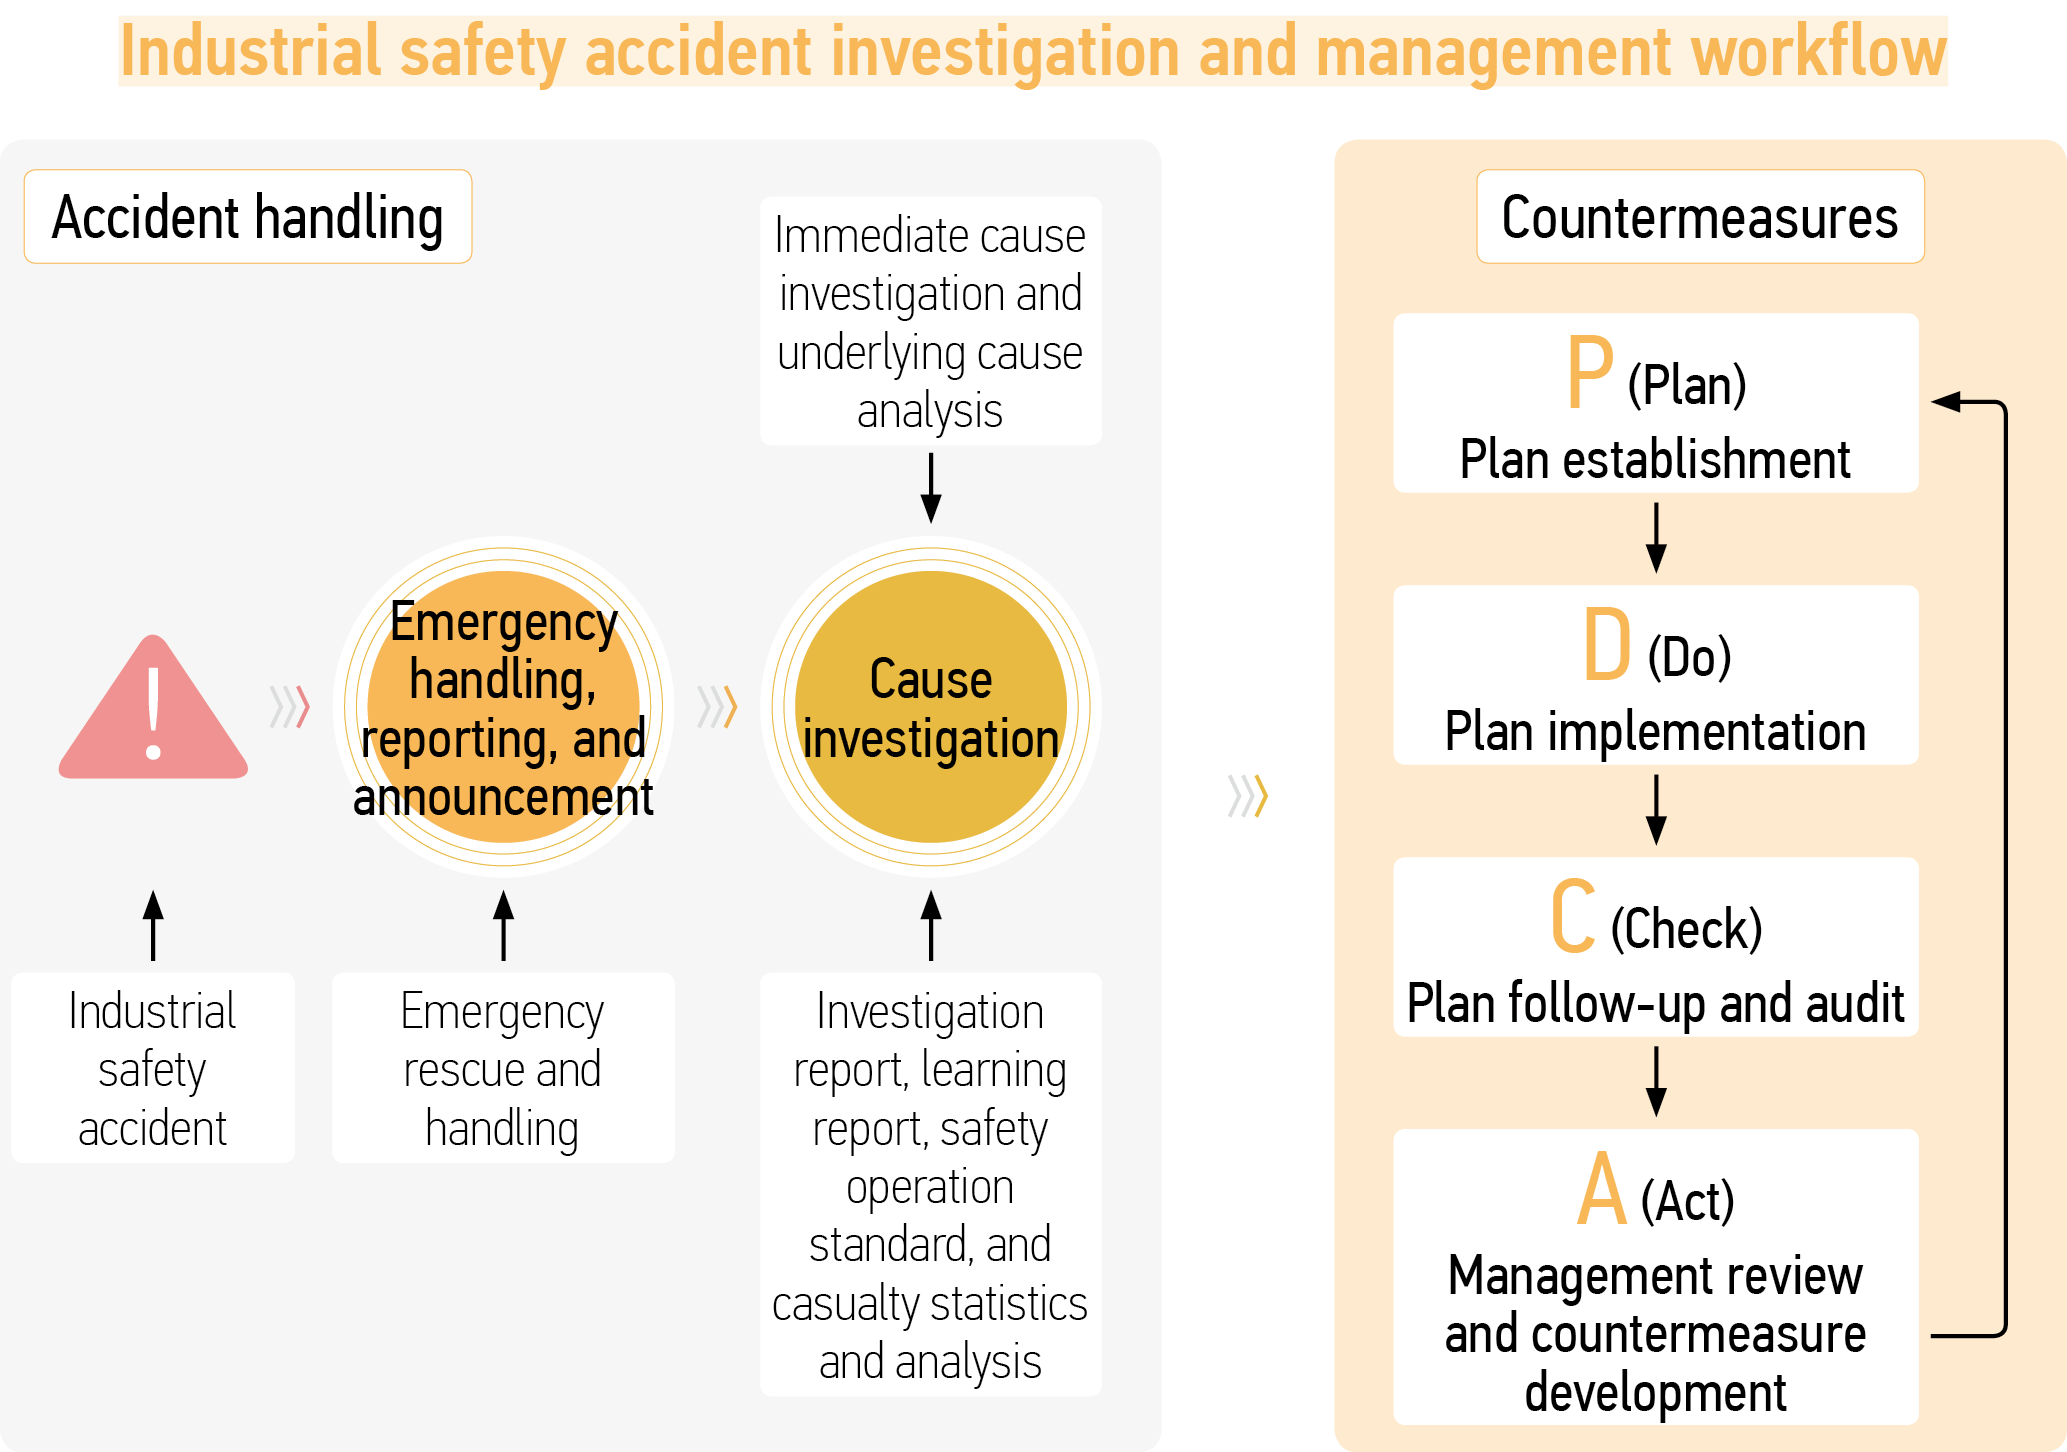 Industrial safety accident investigation and management workflow